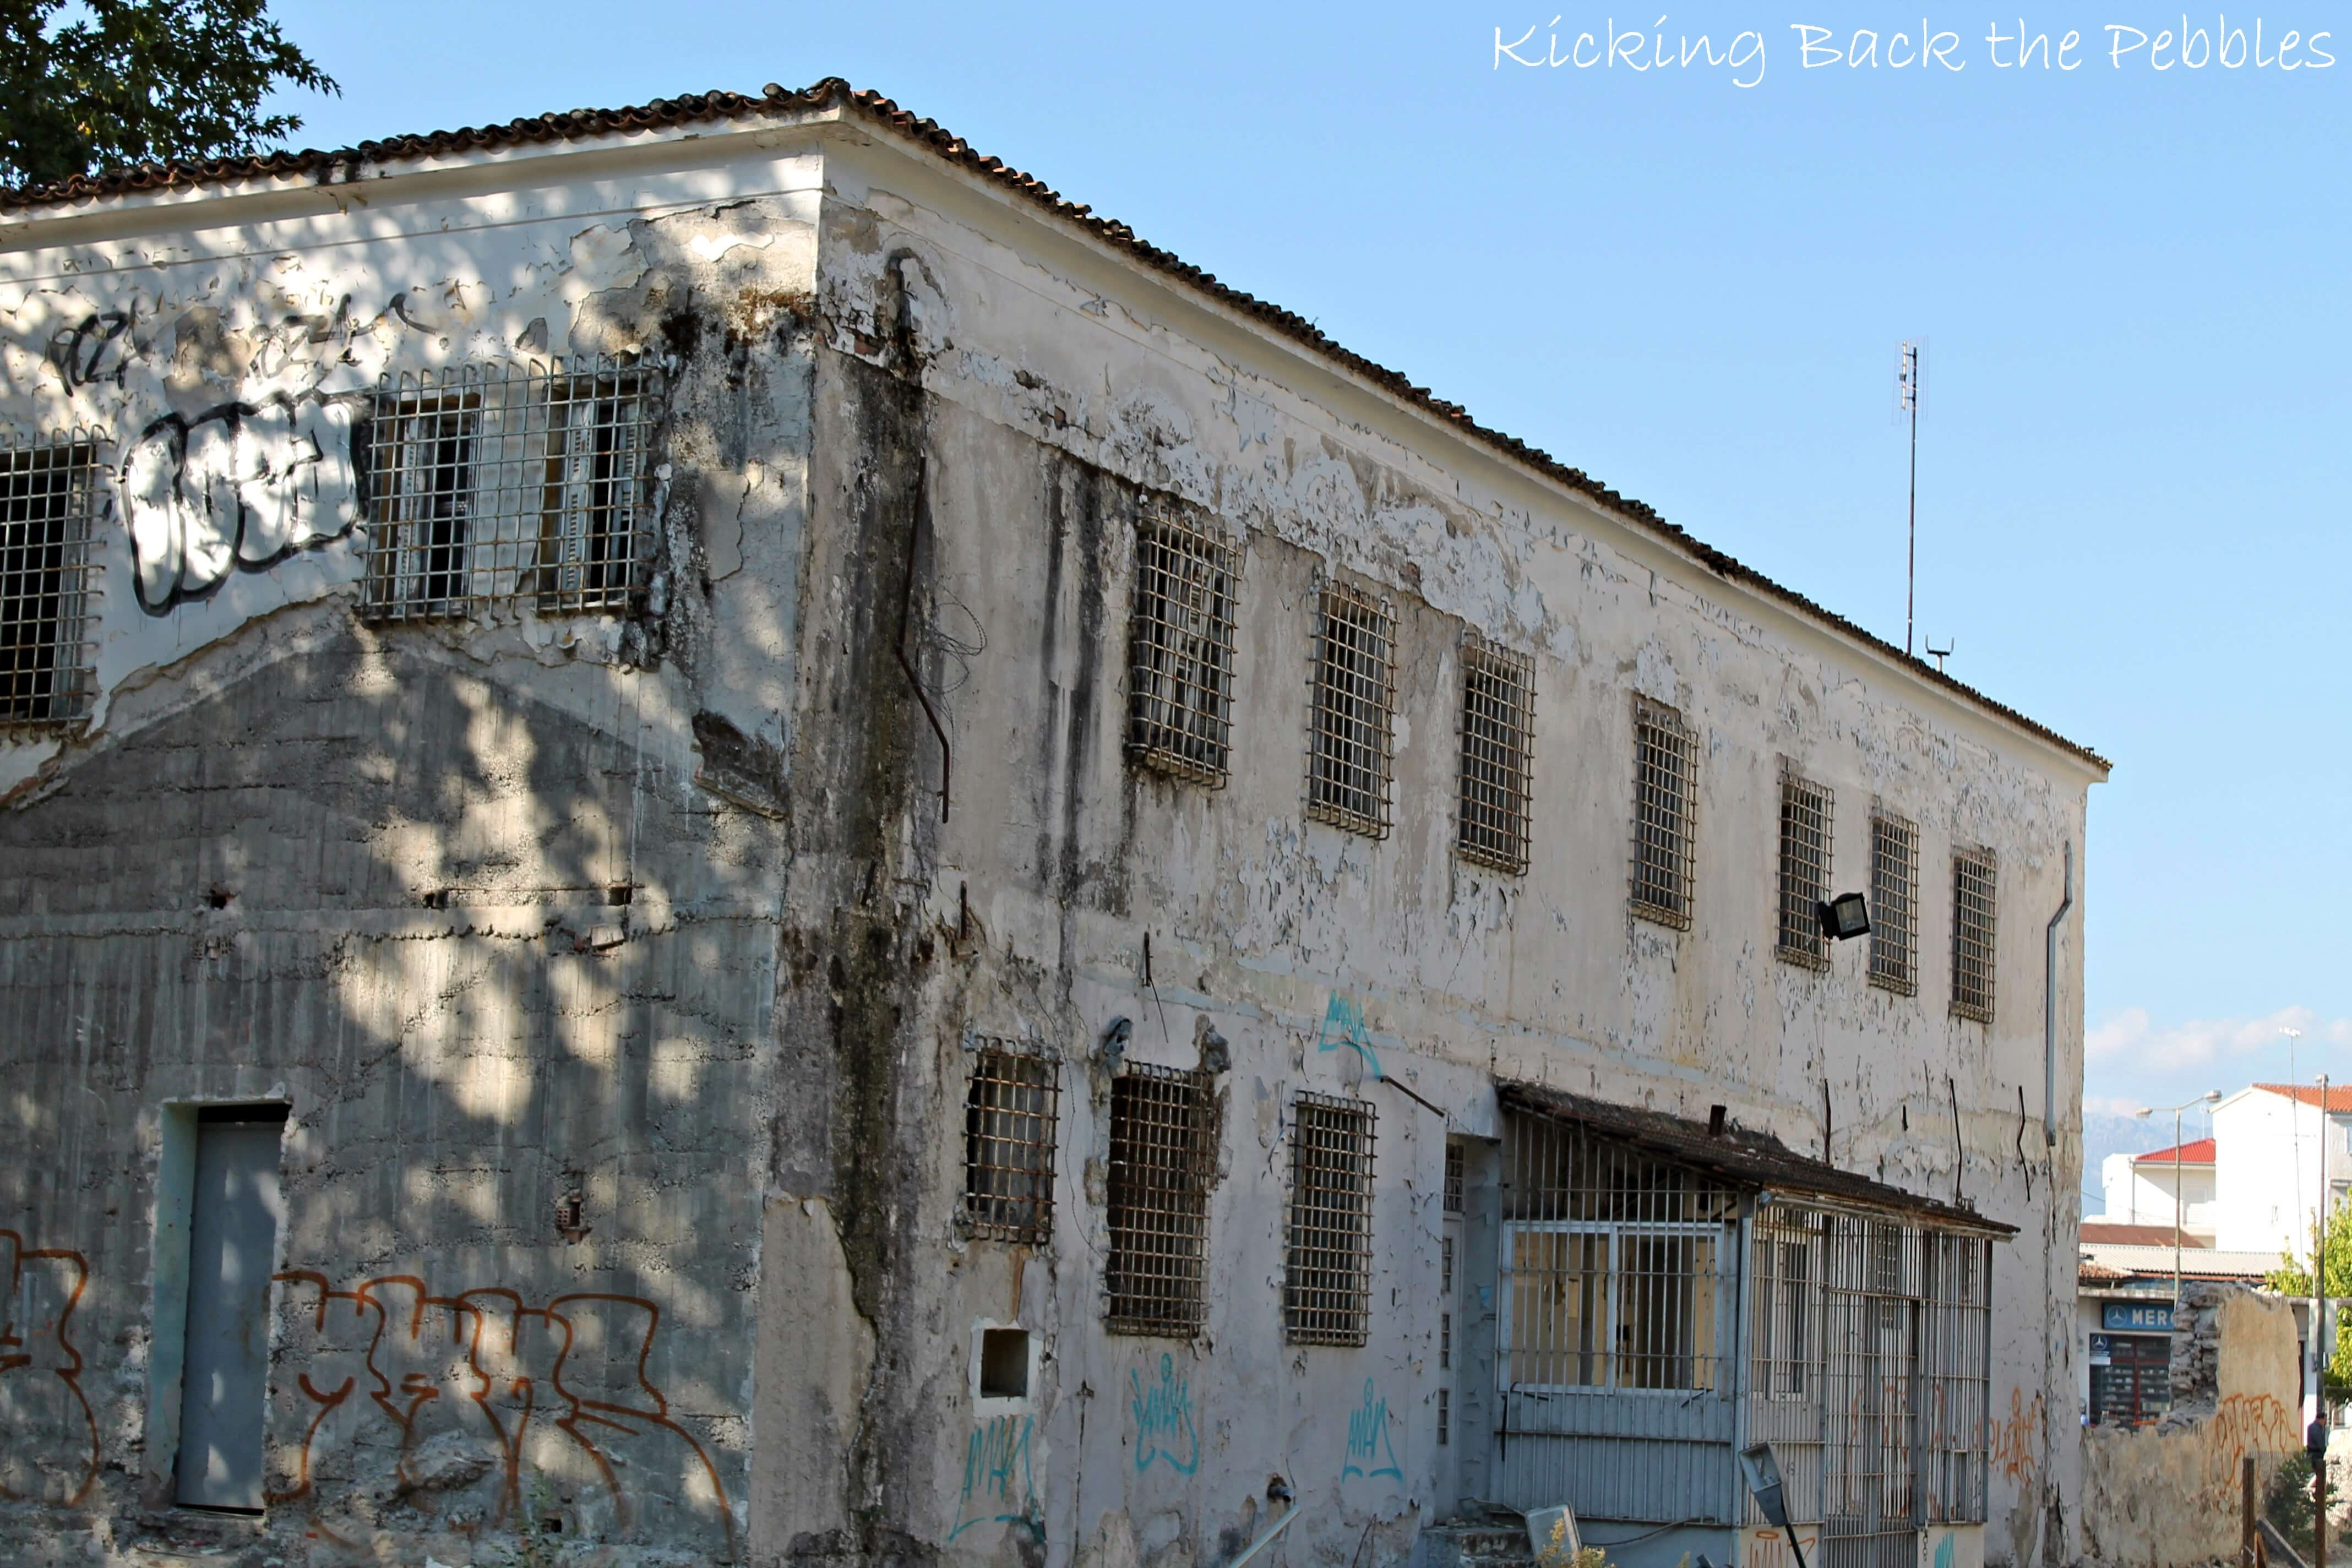 Old Prison building - Trikala, Thessaly | Kicking Back the Pebbles